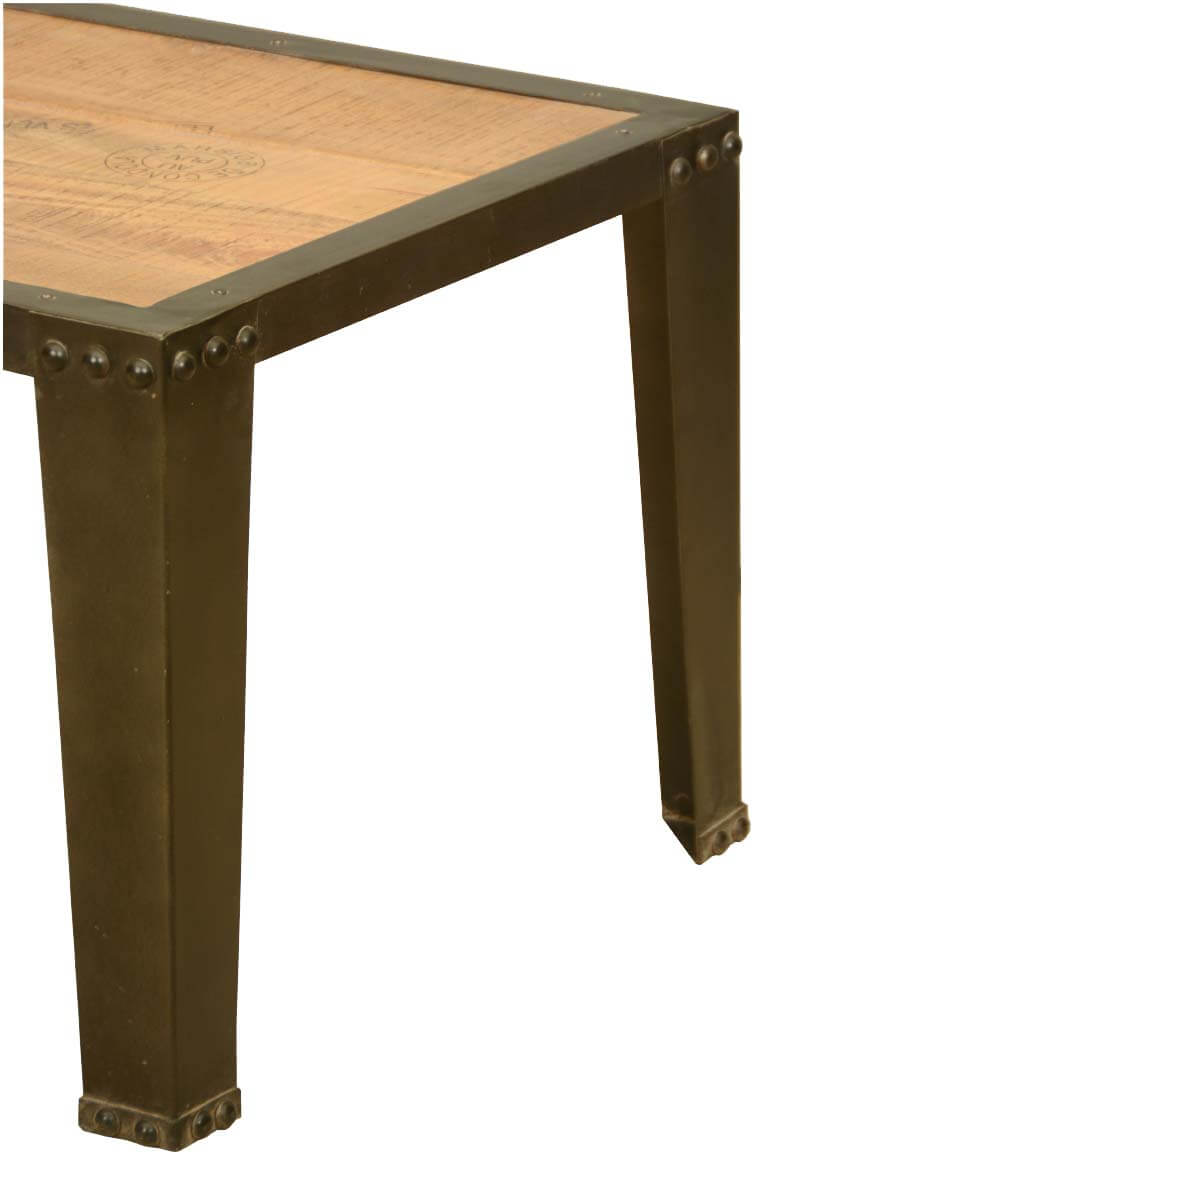 Rustic Wood And Metal Coffee Tables: Rustic Industrial Iron Metal Acacia Wood Cocktail Coffee Table